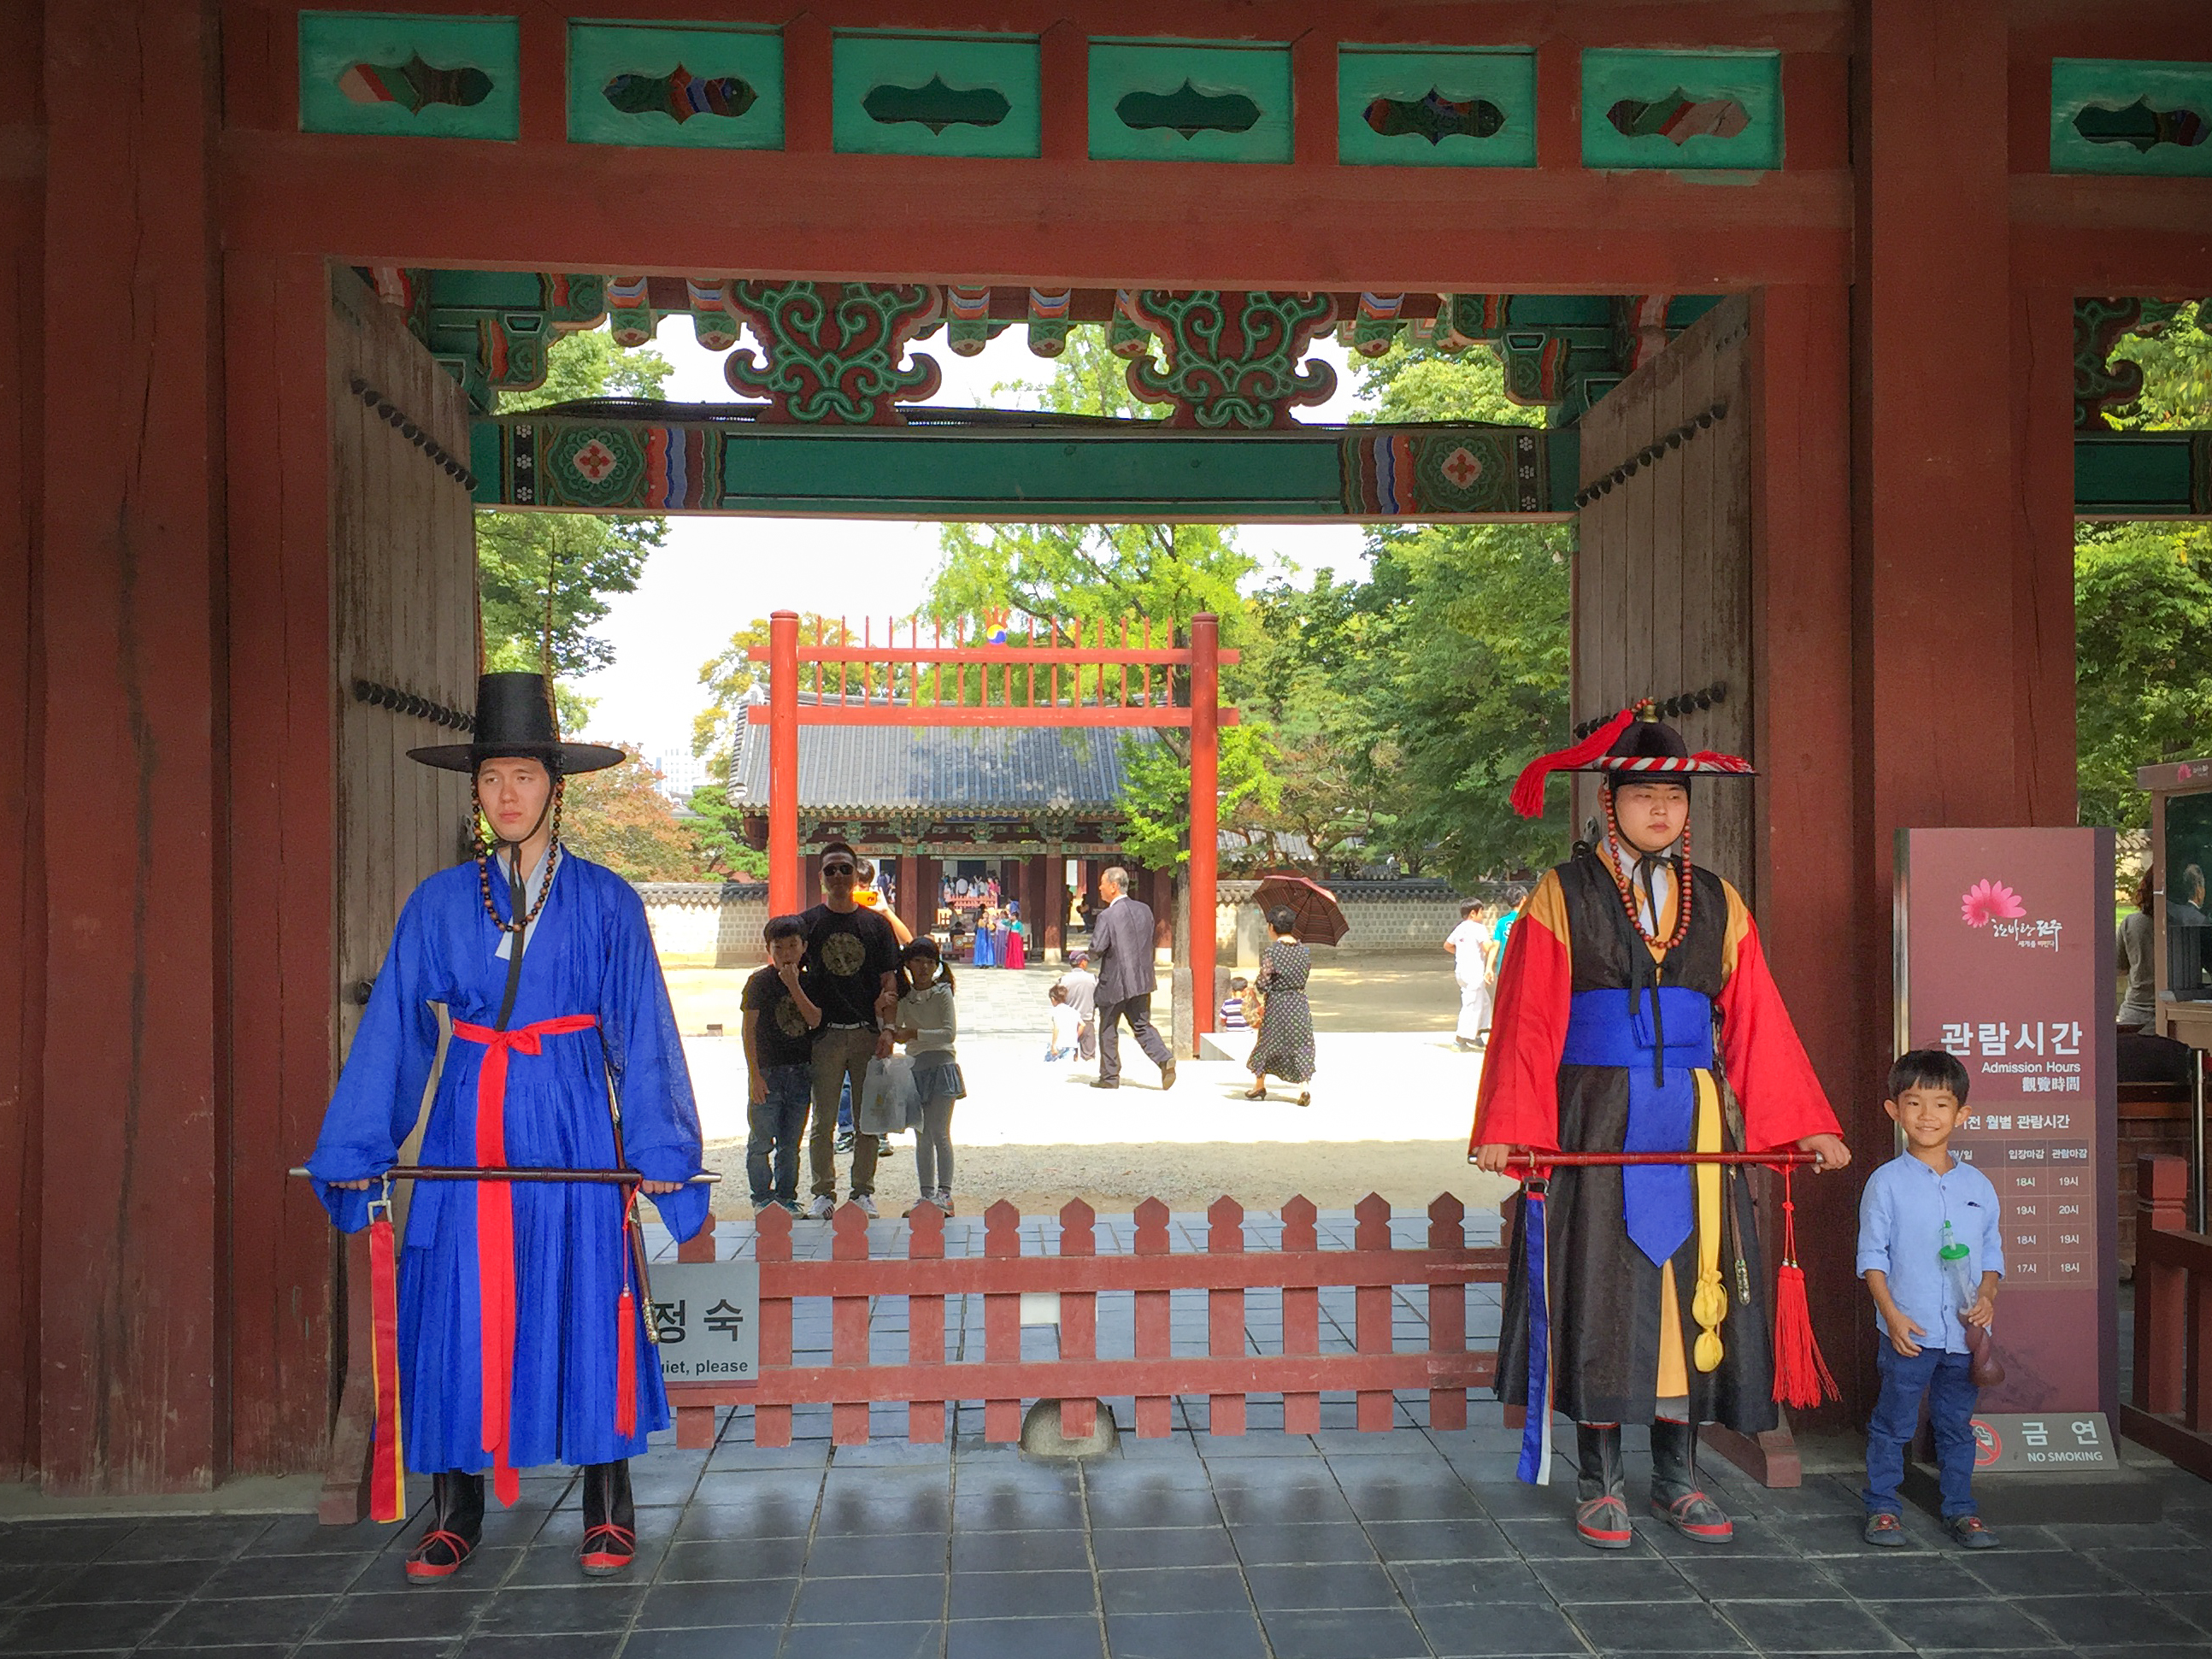 Guards at the gate in traditional garb